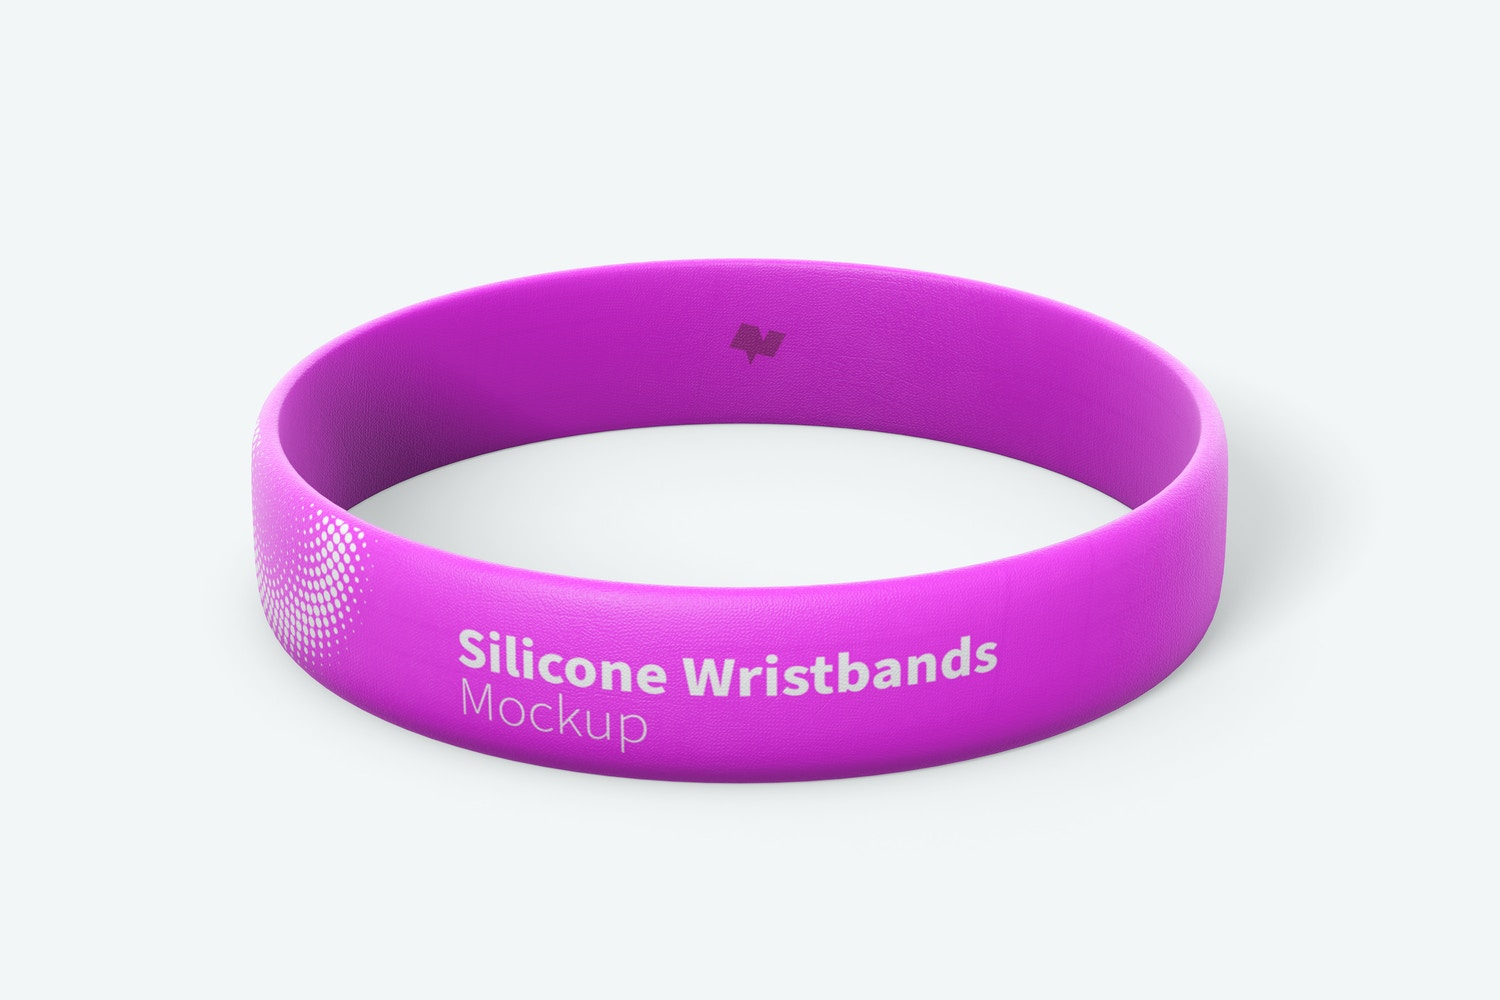 Silicone Wristband Mockup, Single Front View